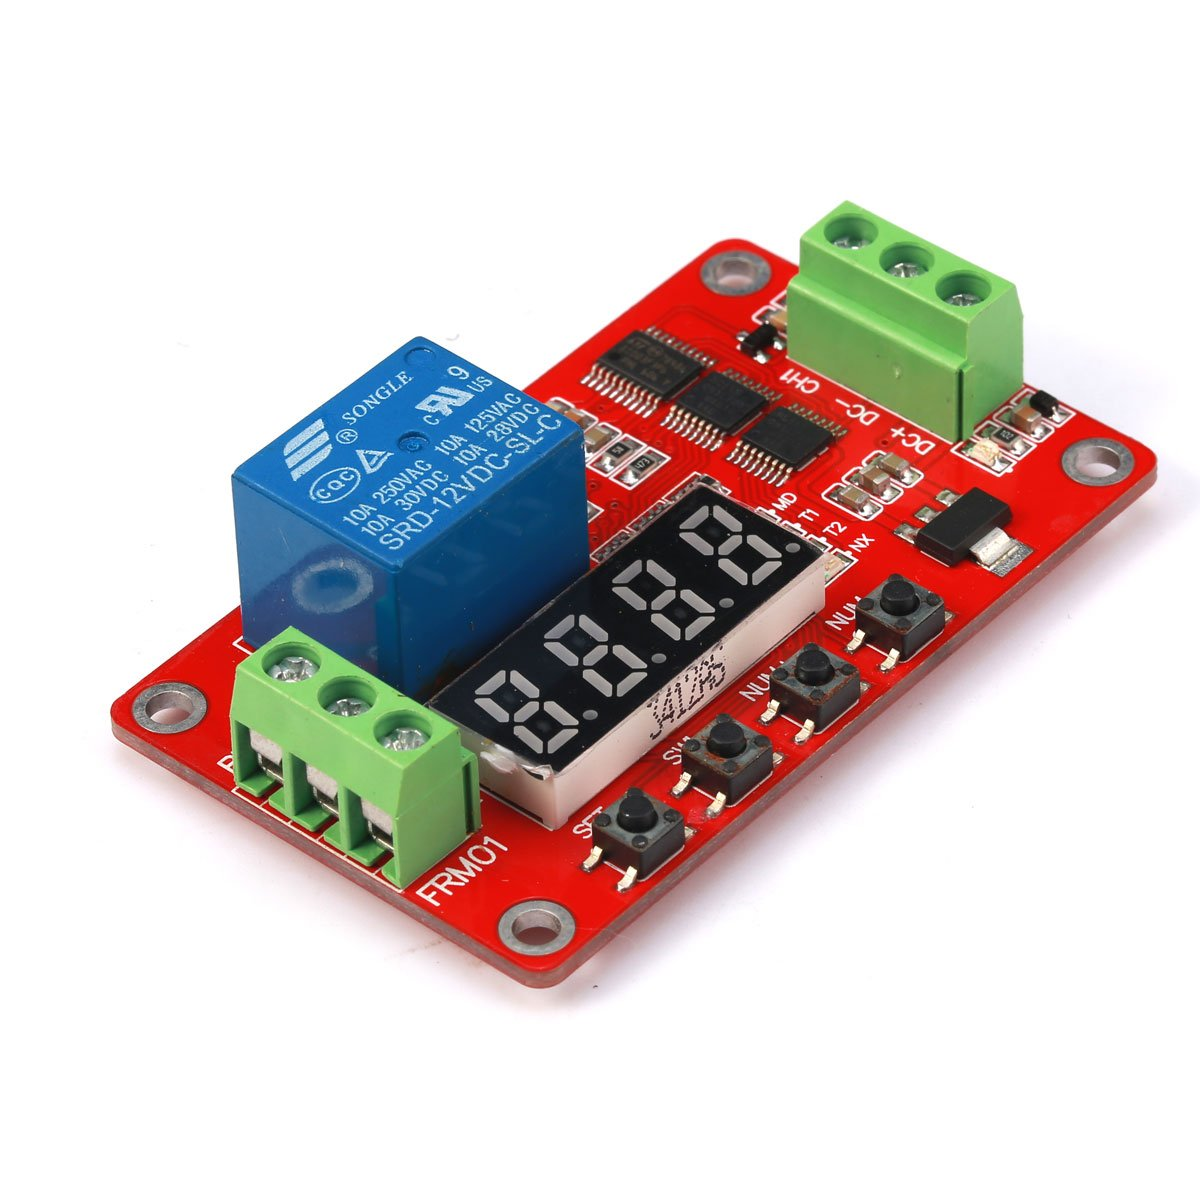 Geri Newer Version 12v Multifunction Relay Cycle Timer Module Car Stereo Wiring Diagram Automation Control Blog Industrial Programmable With Customized Settings Increased To 18 Modes